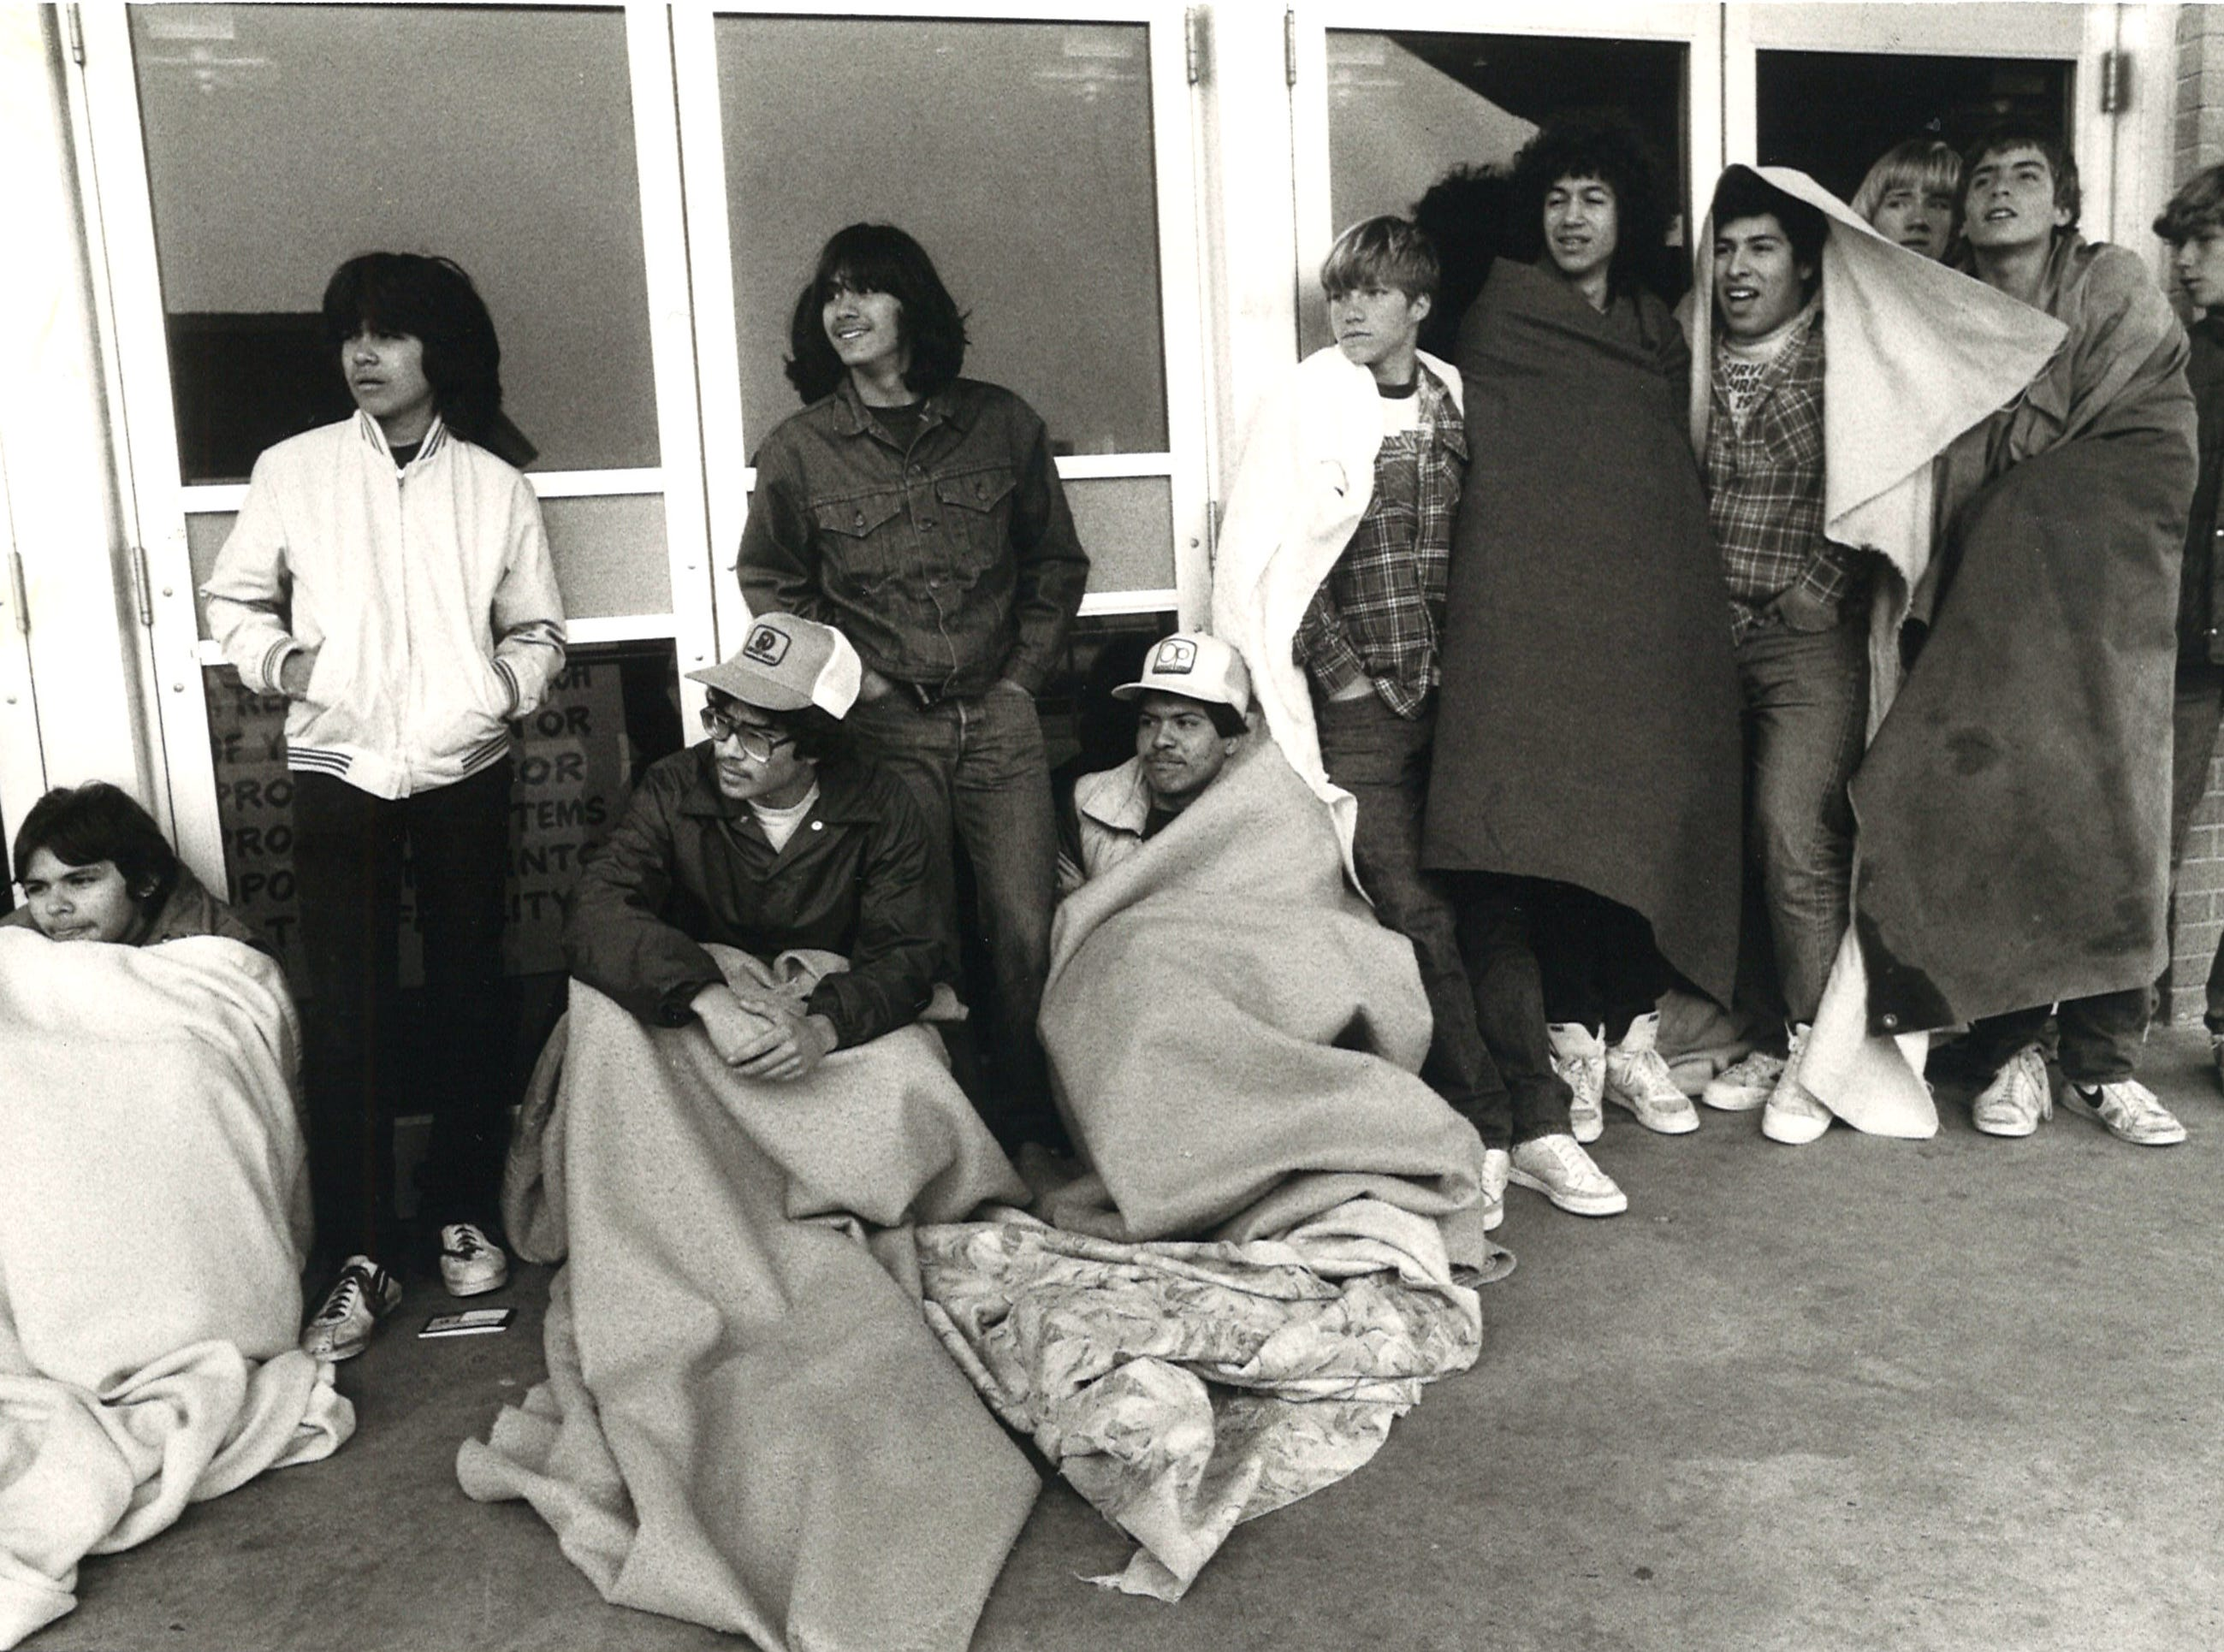 Teens and young adults line up in the rain and cold to be first in line to buy tickets to see Sammy Hagar and Night Ranger at Memorial Coliseum in Corpus Christi on Feb. 26, 1983.